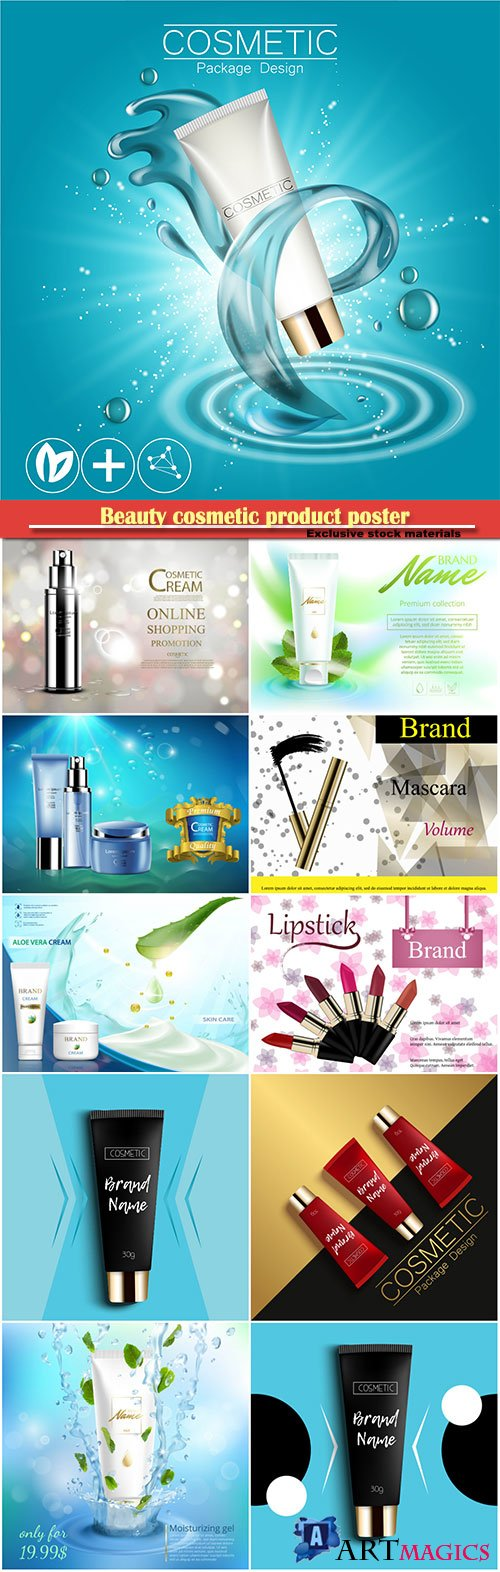 Beauty cosmetic product poster, cosmetic bottle package skin care cream